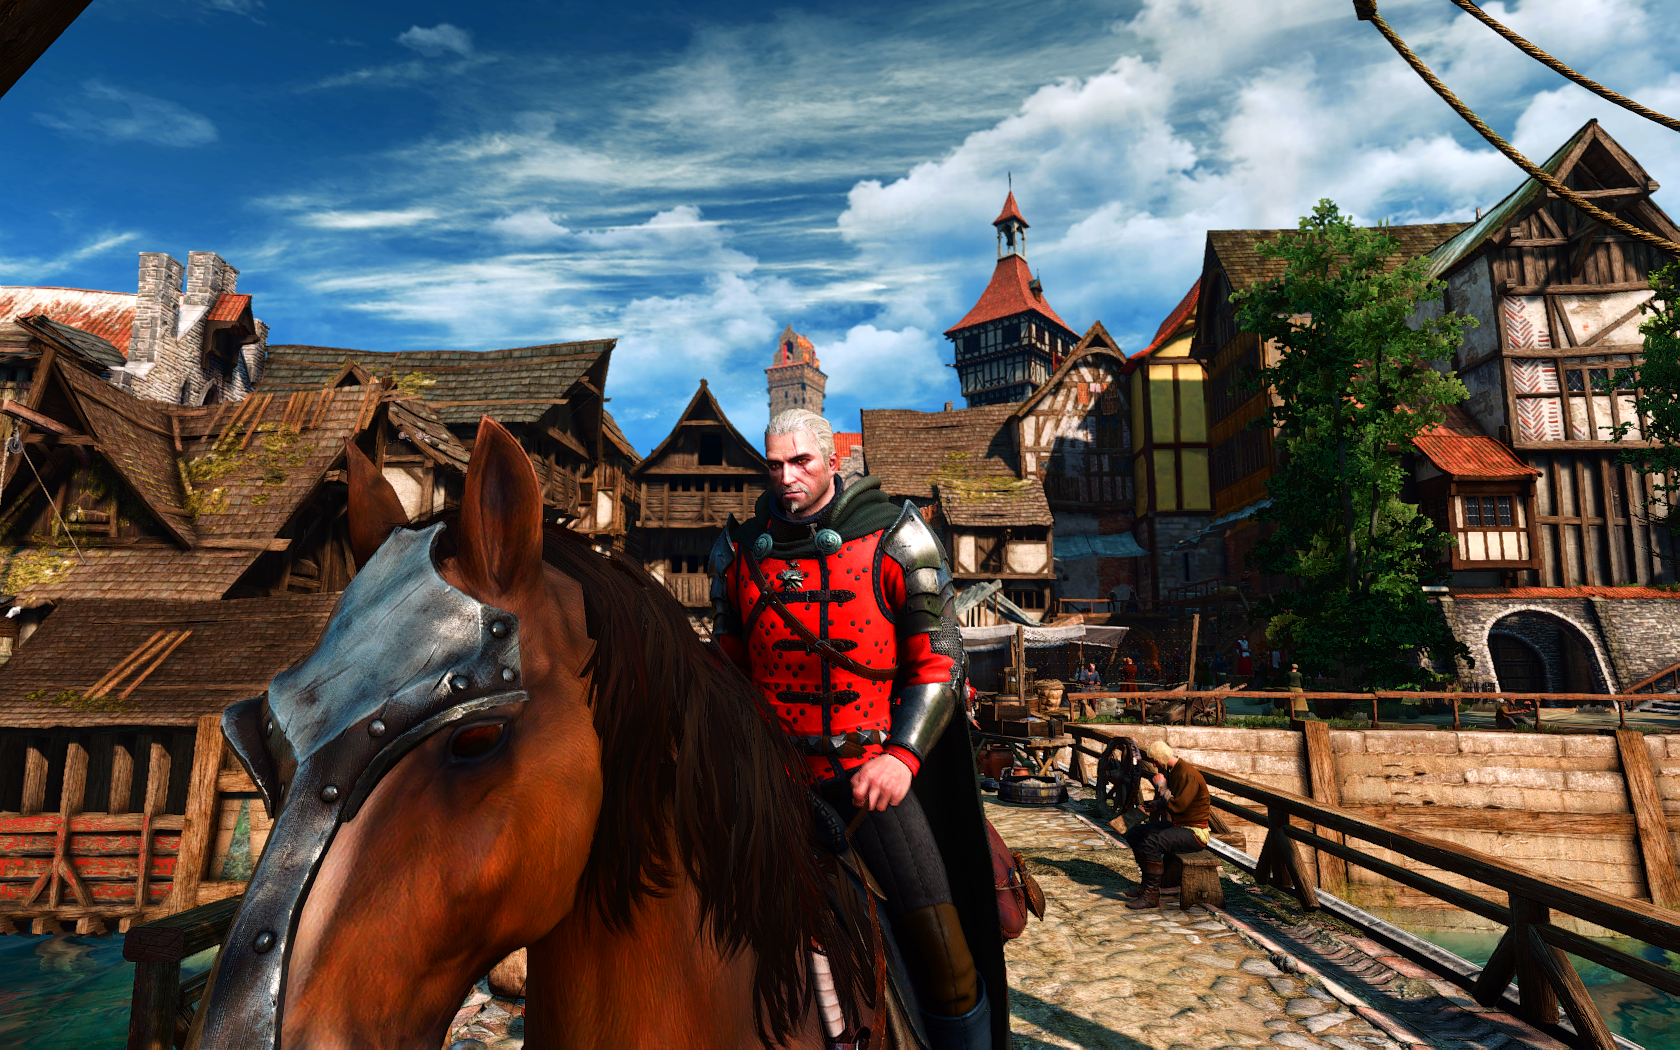 witcher3_2018_06_20_1trjja.png